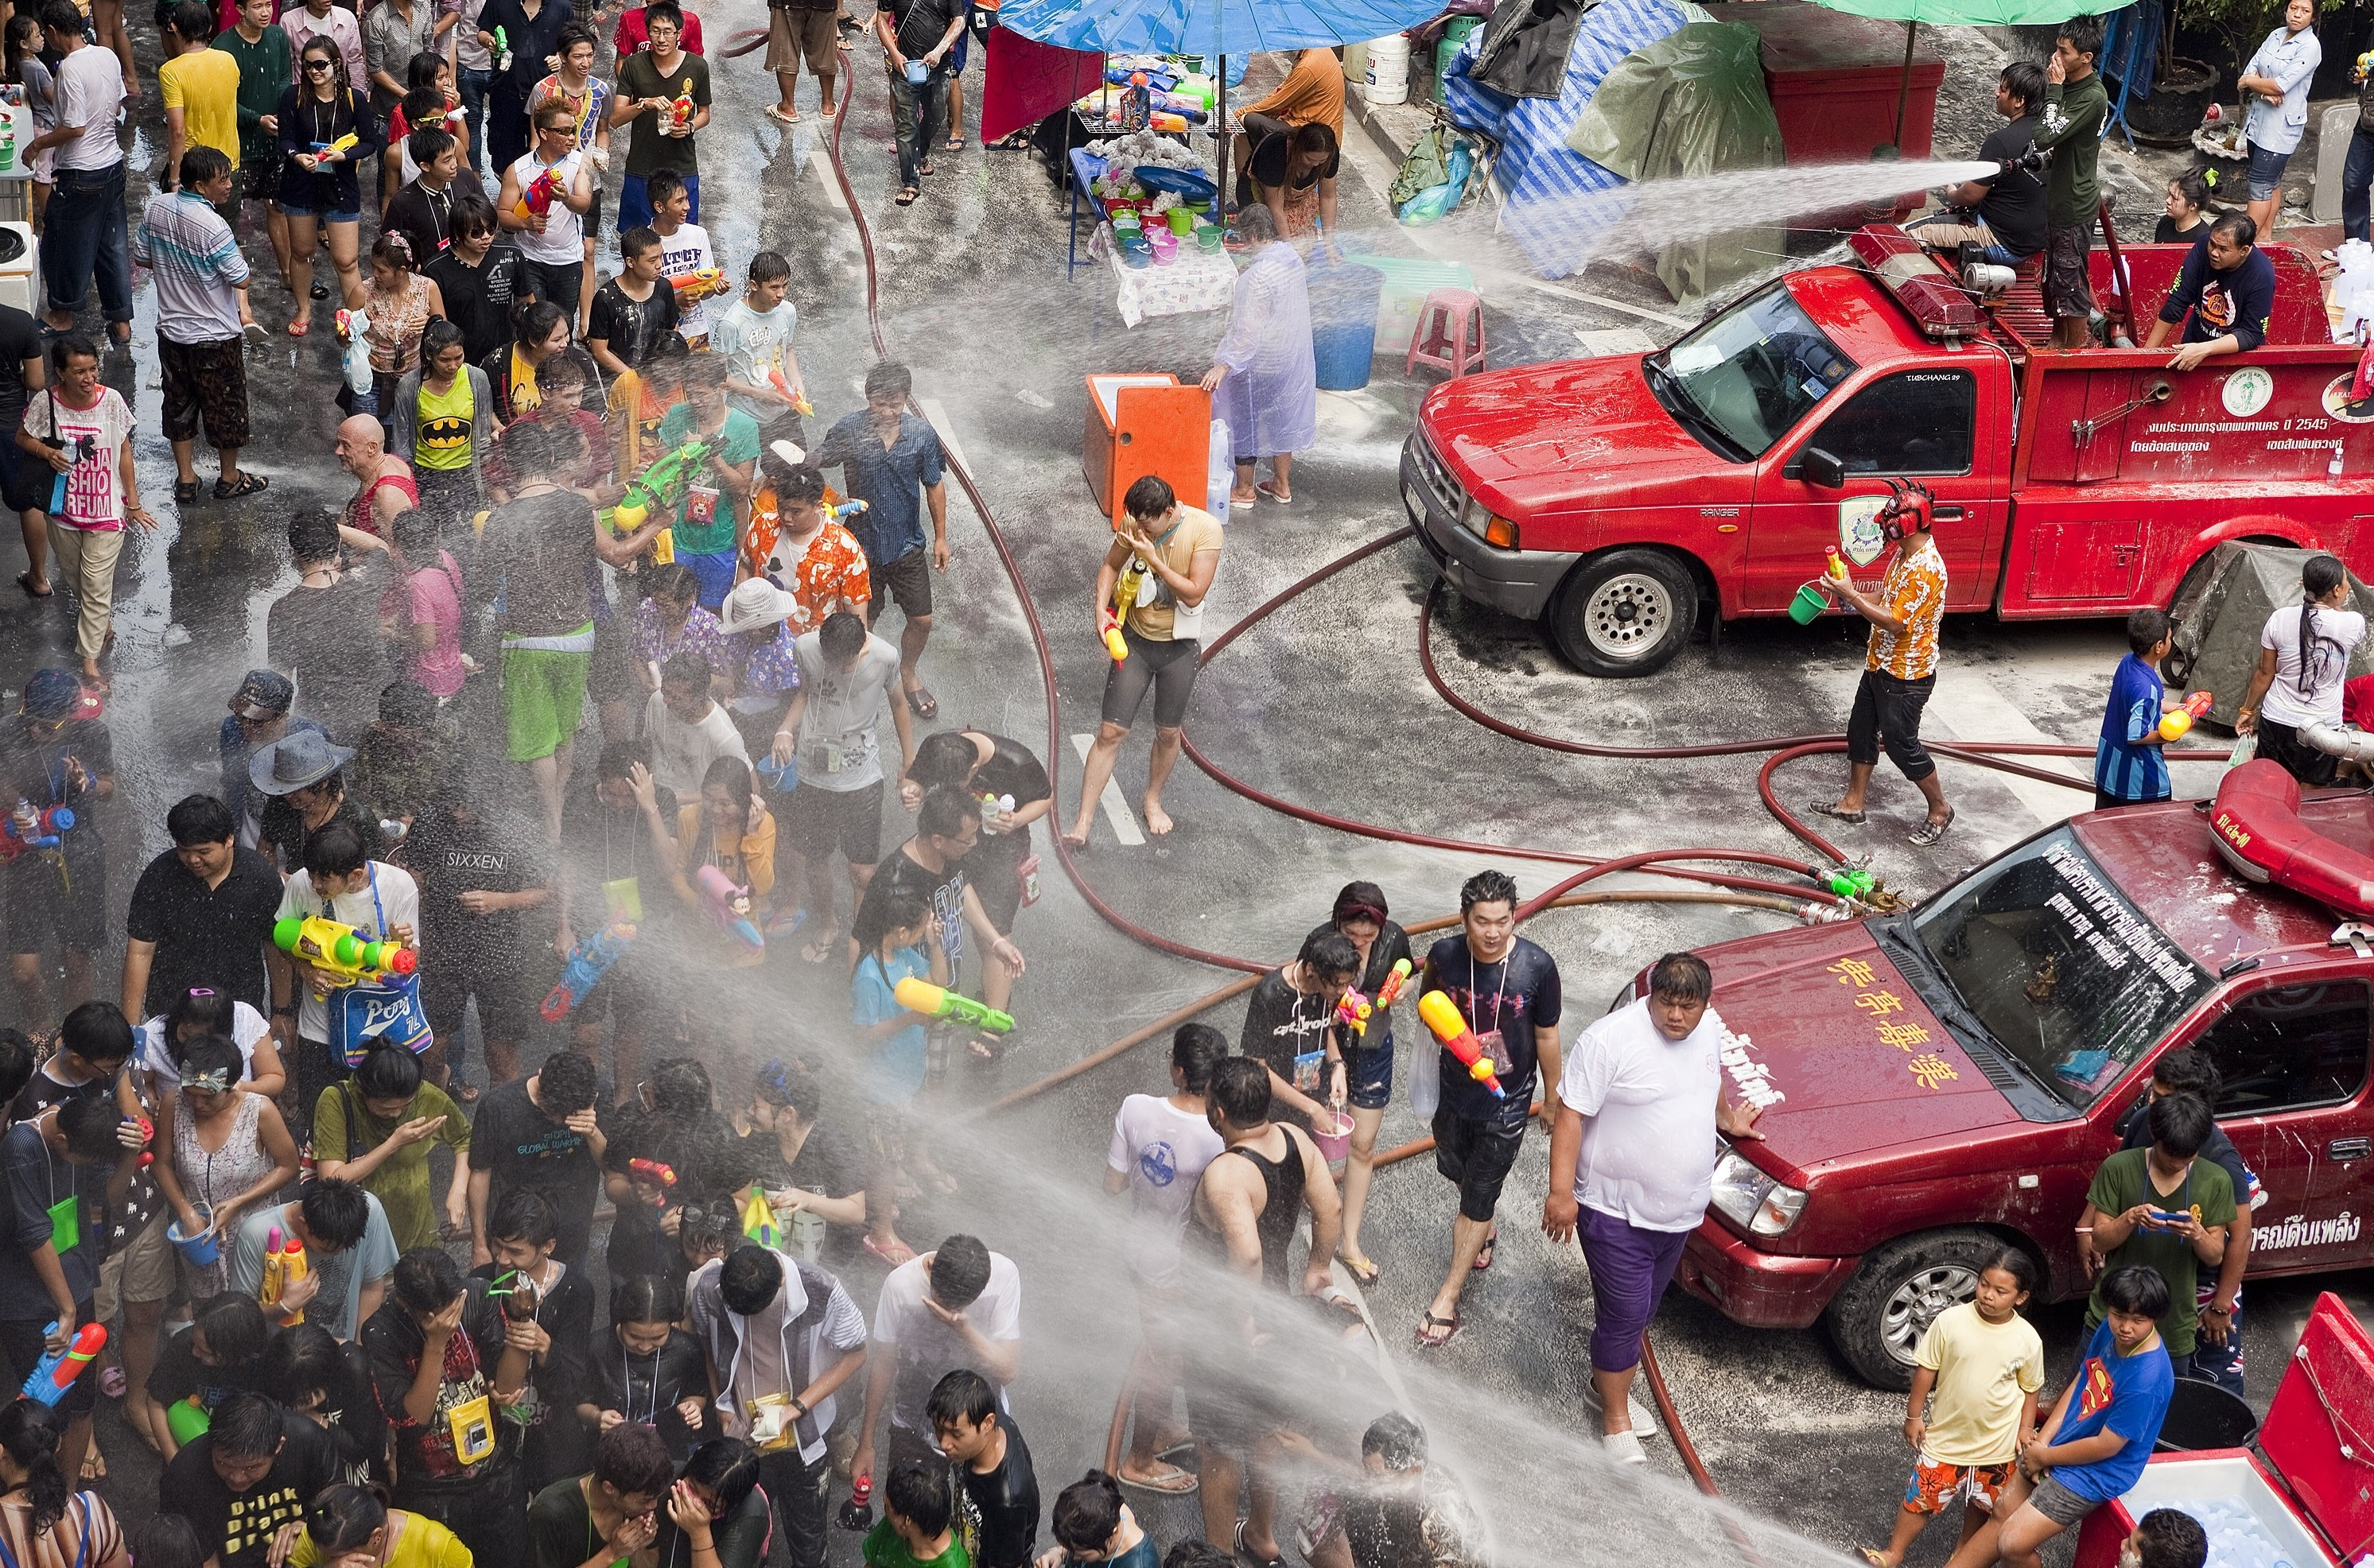 Songkran in Thailand. Photo taken on April 14, 2013.